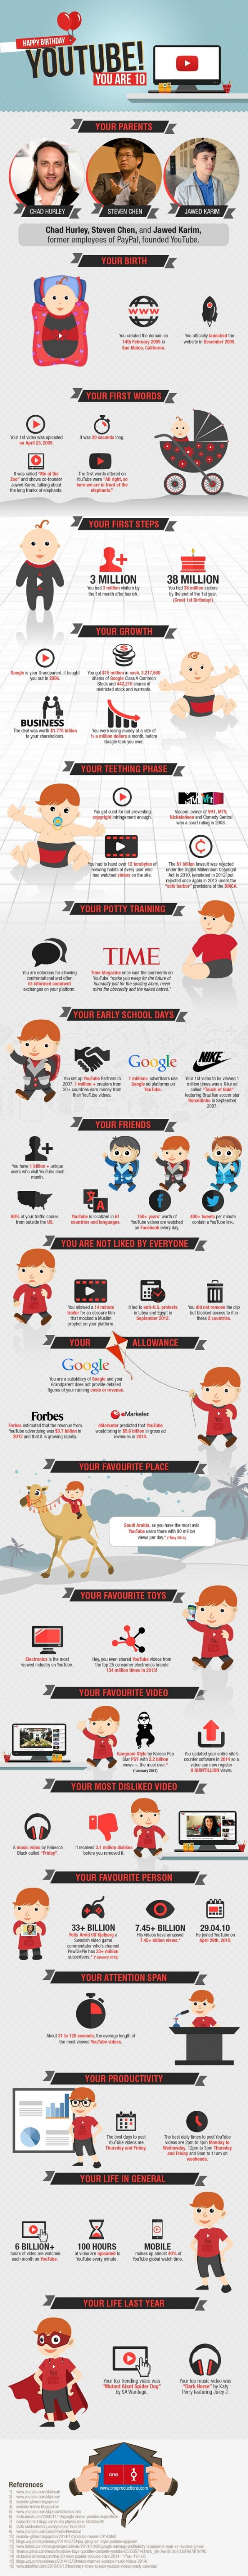 Infographic Youtube history